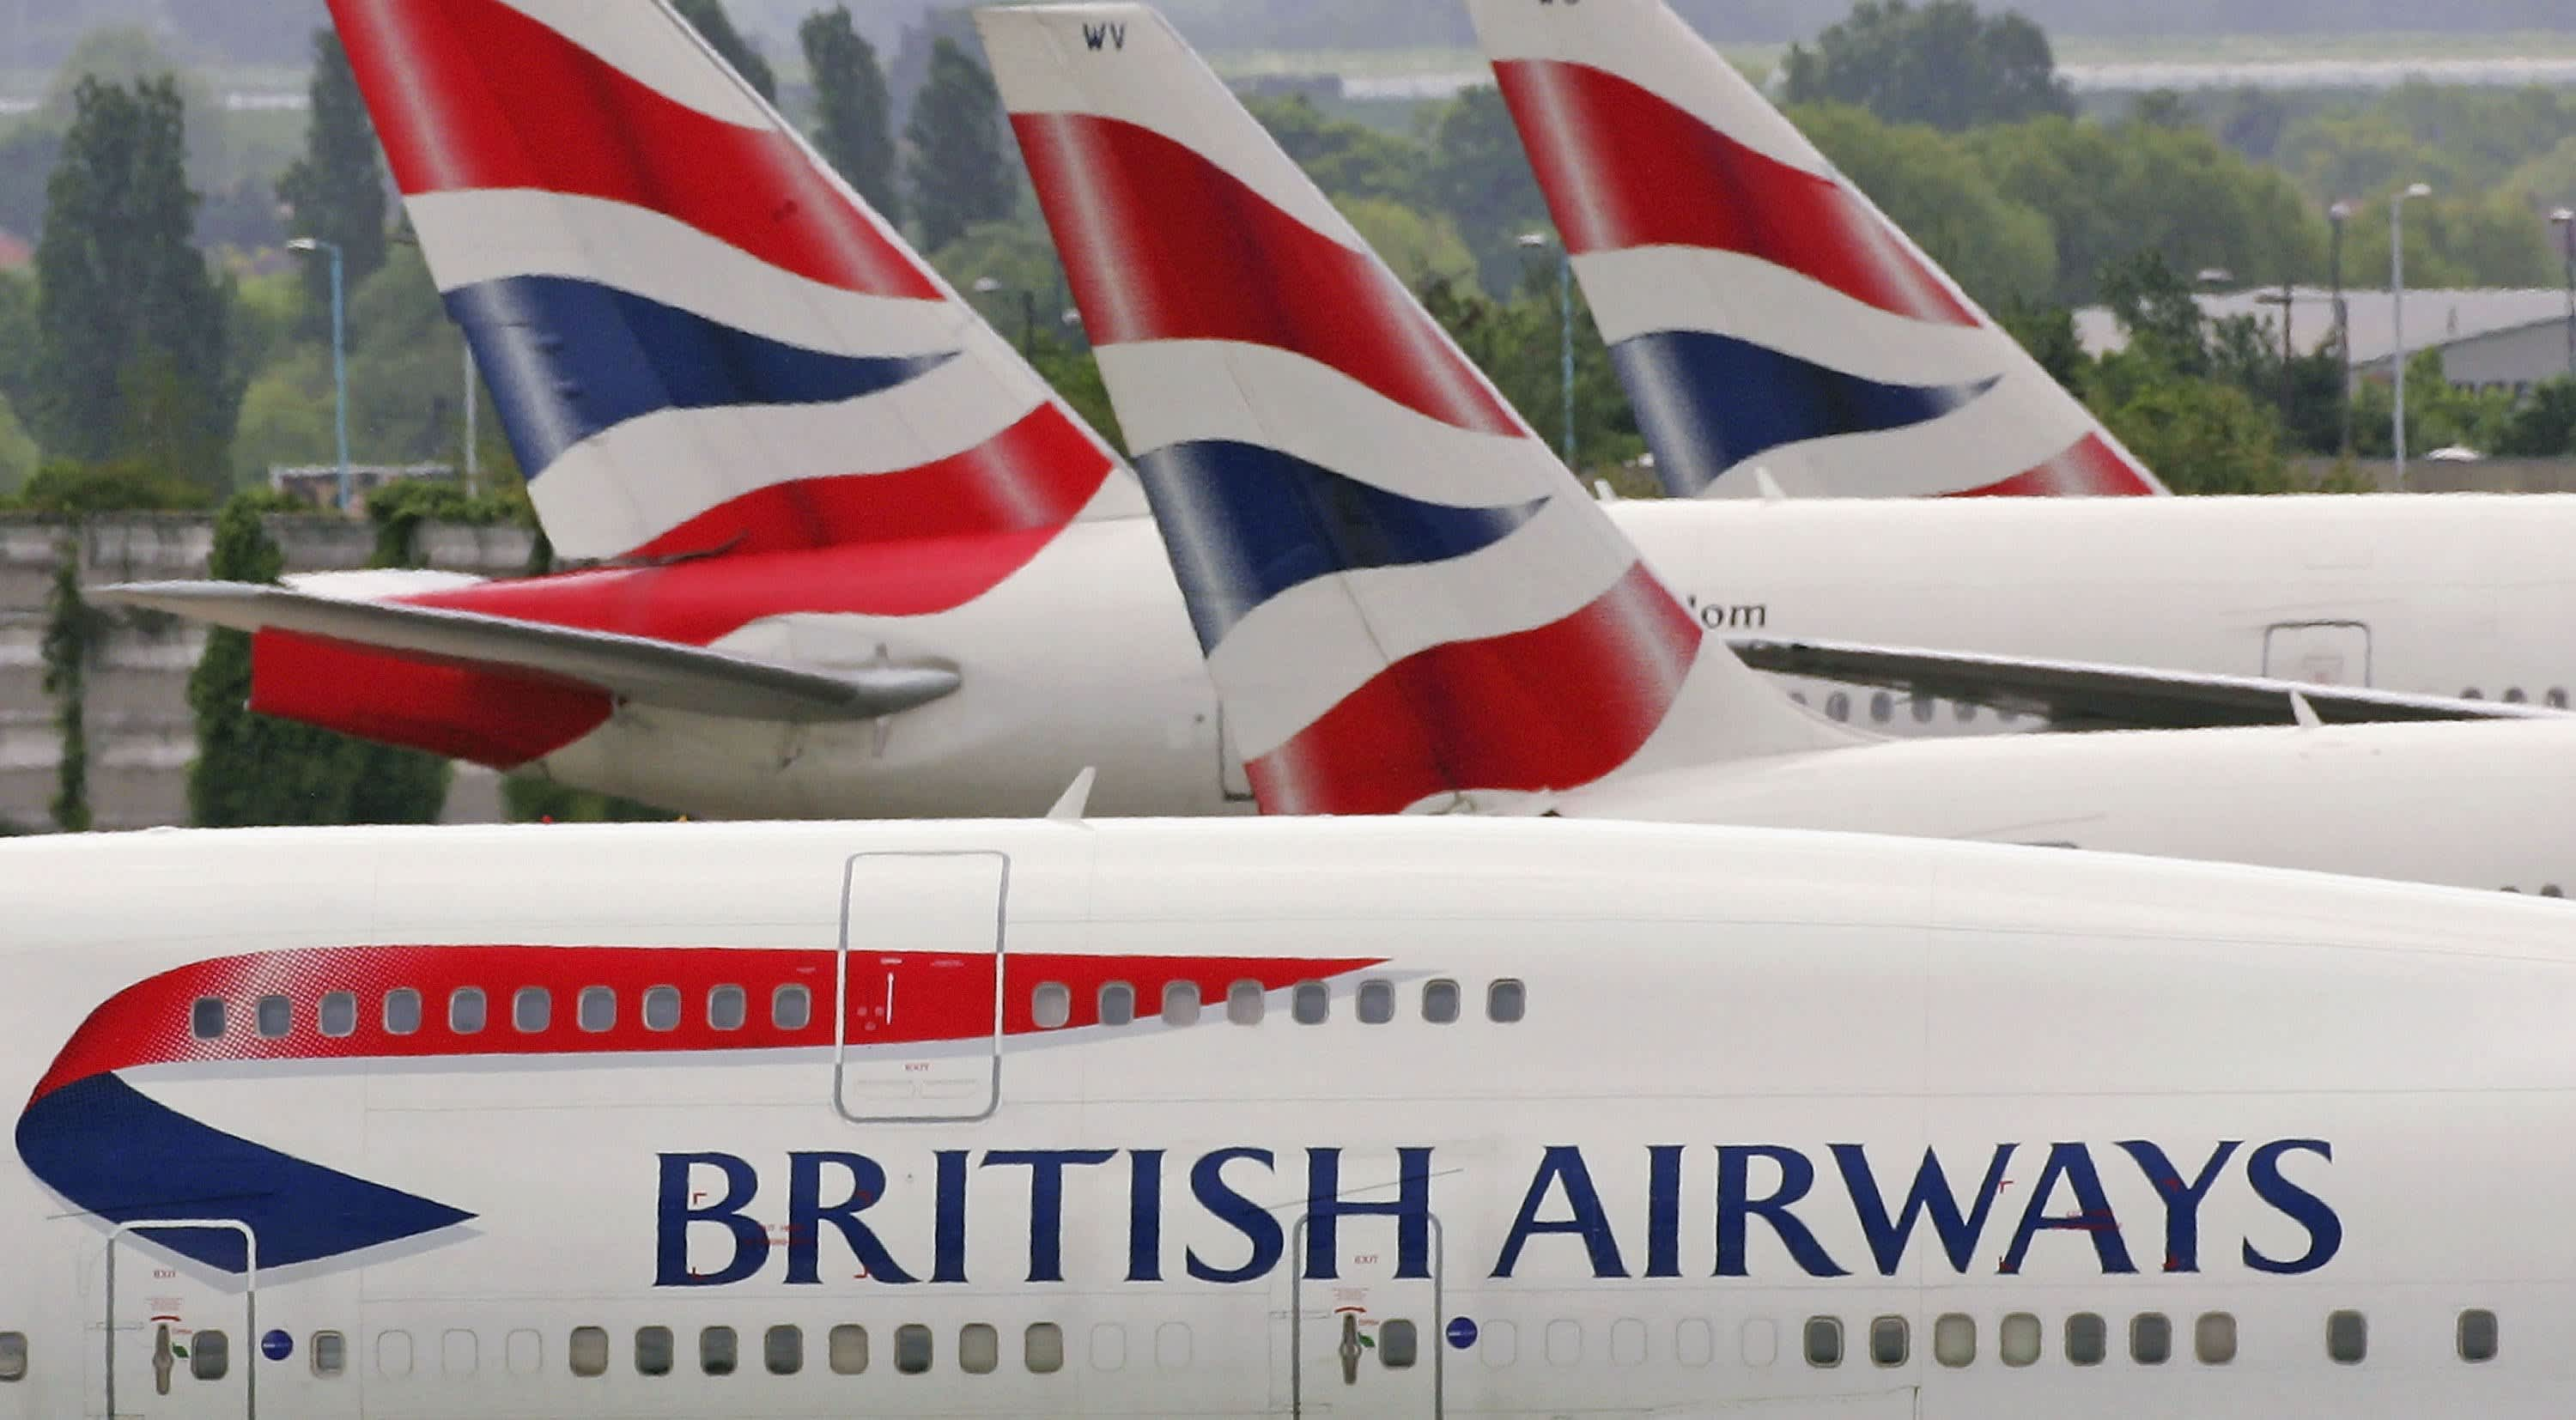 British Airways boss steps down as airline navigates 'worst crisis faced in our industry' – CNBC